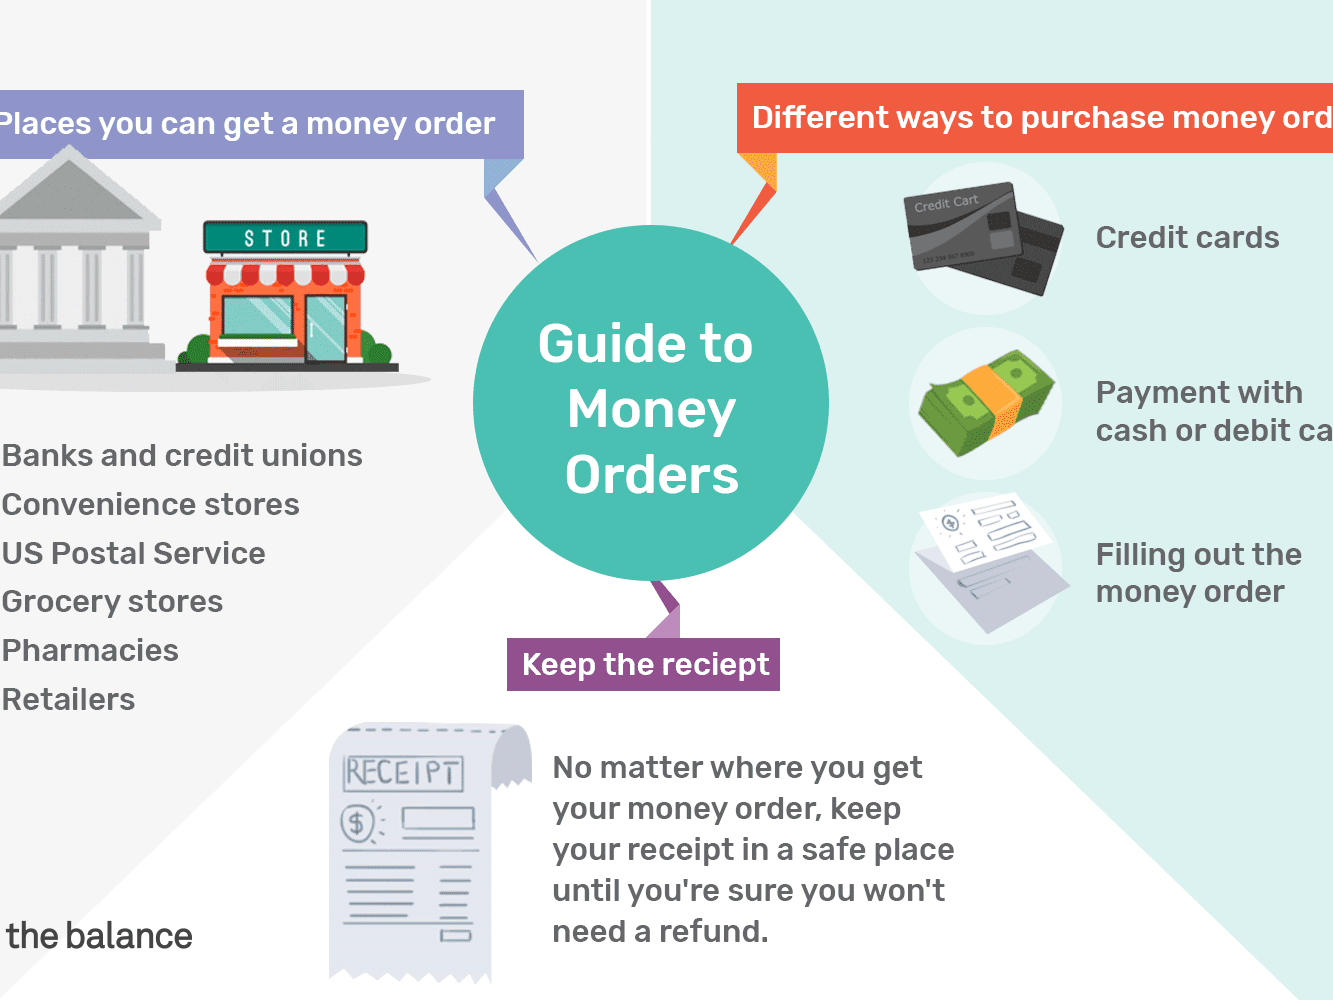 Where to Get a Money Order: Tips for Buying